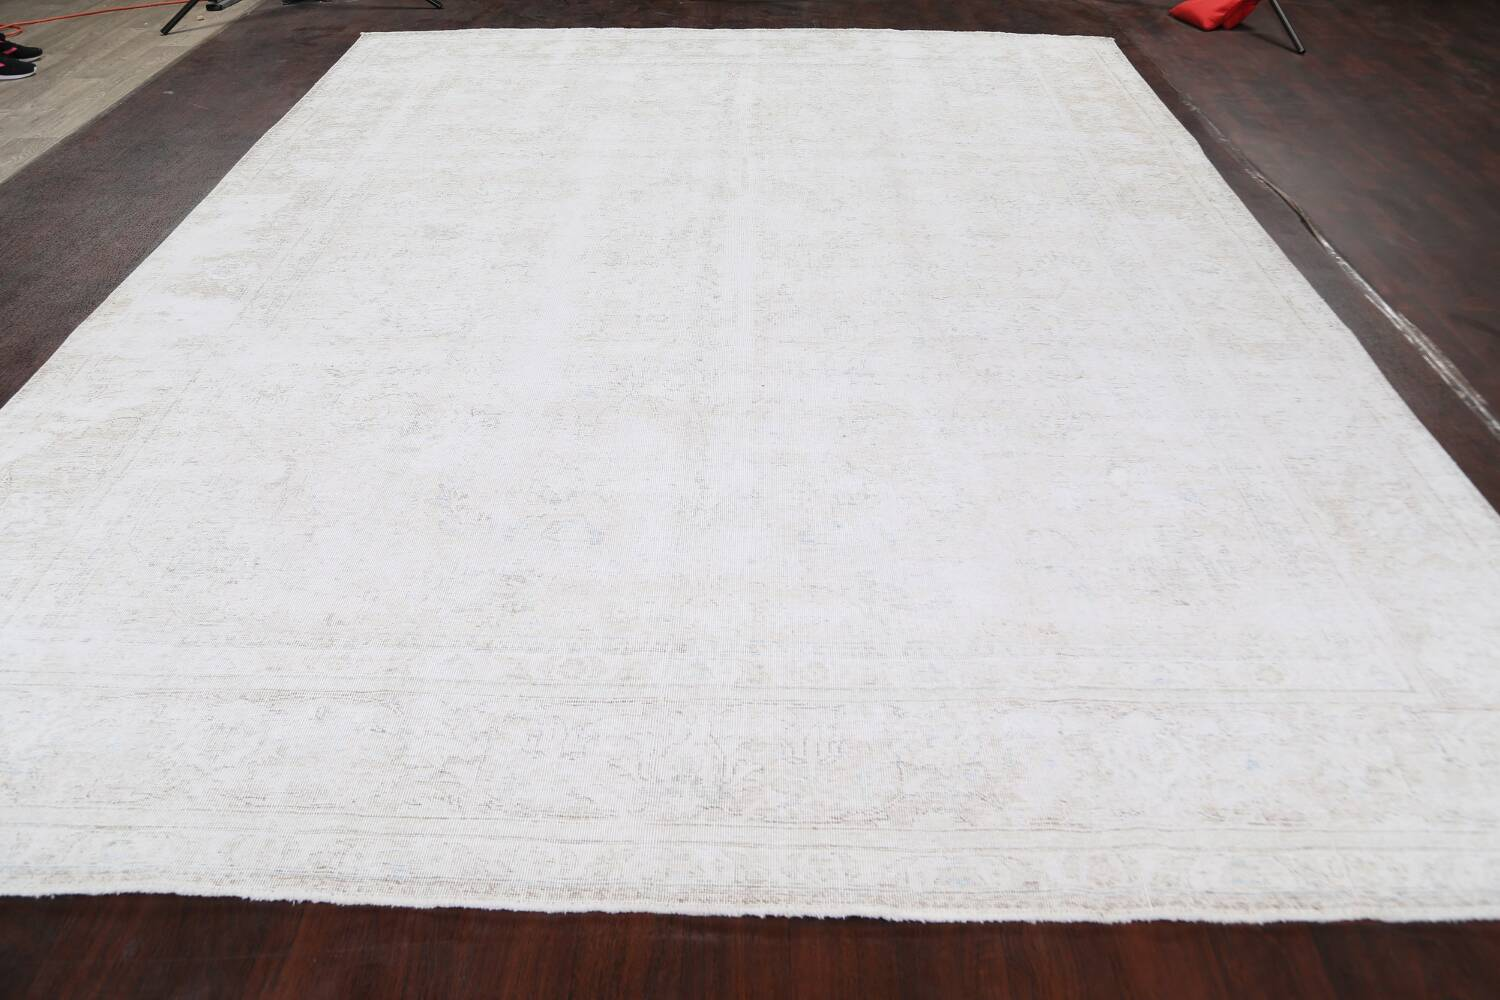 Antique Muted Tabriz Persian Area Rug 10x12 image 15